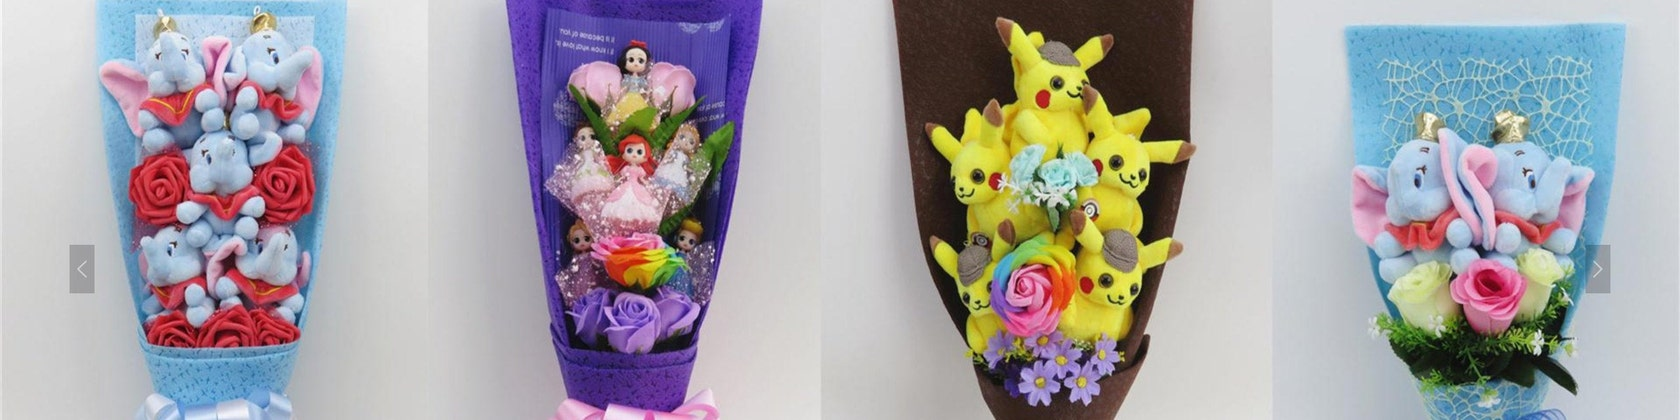 gifts for daughter Dreamworks Animation Inspired Night Fury Small Bouquet Gifts for girl birthday gift for girl